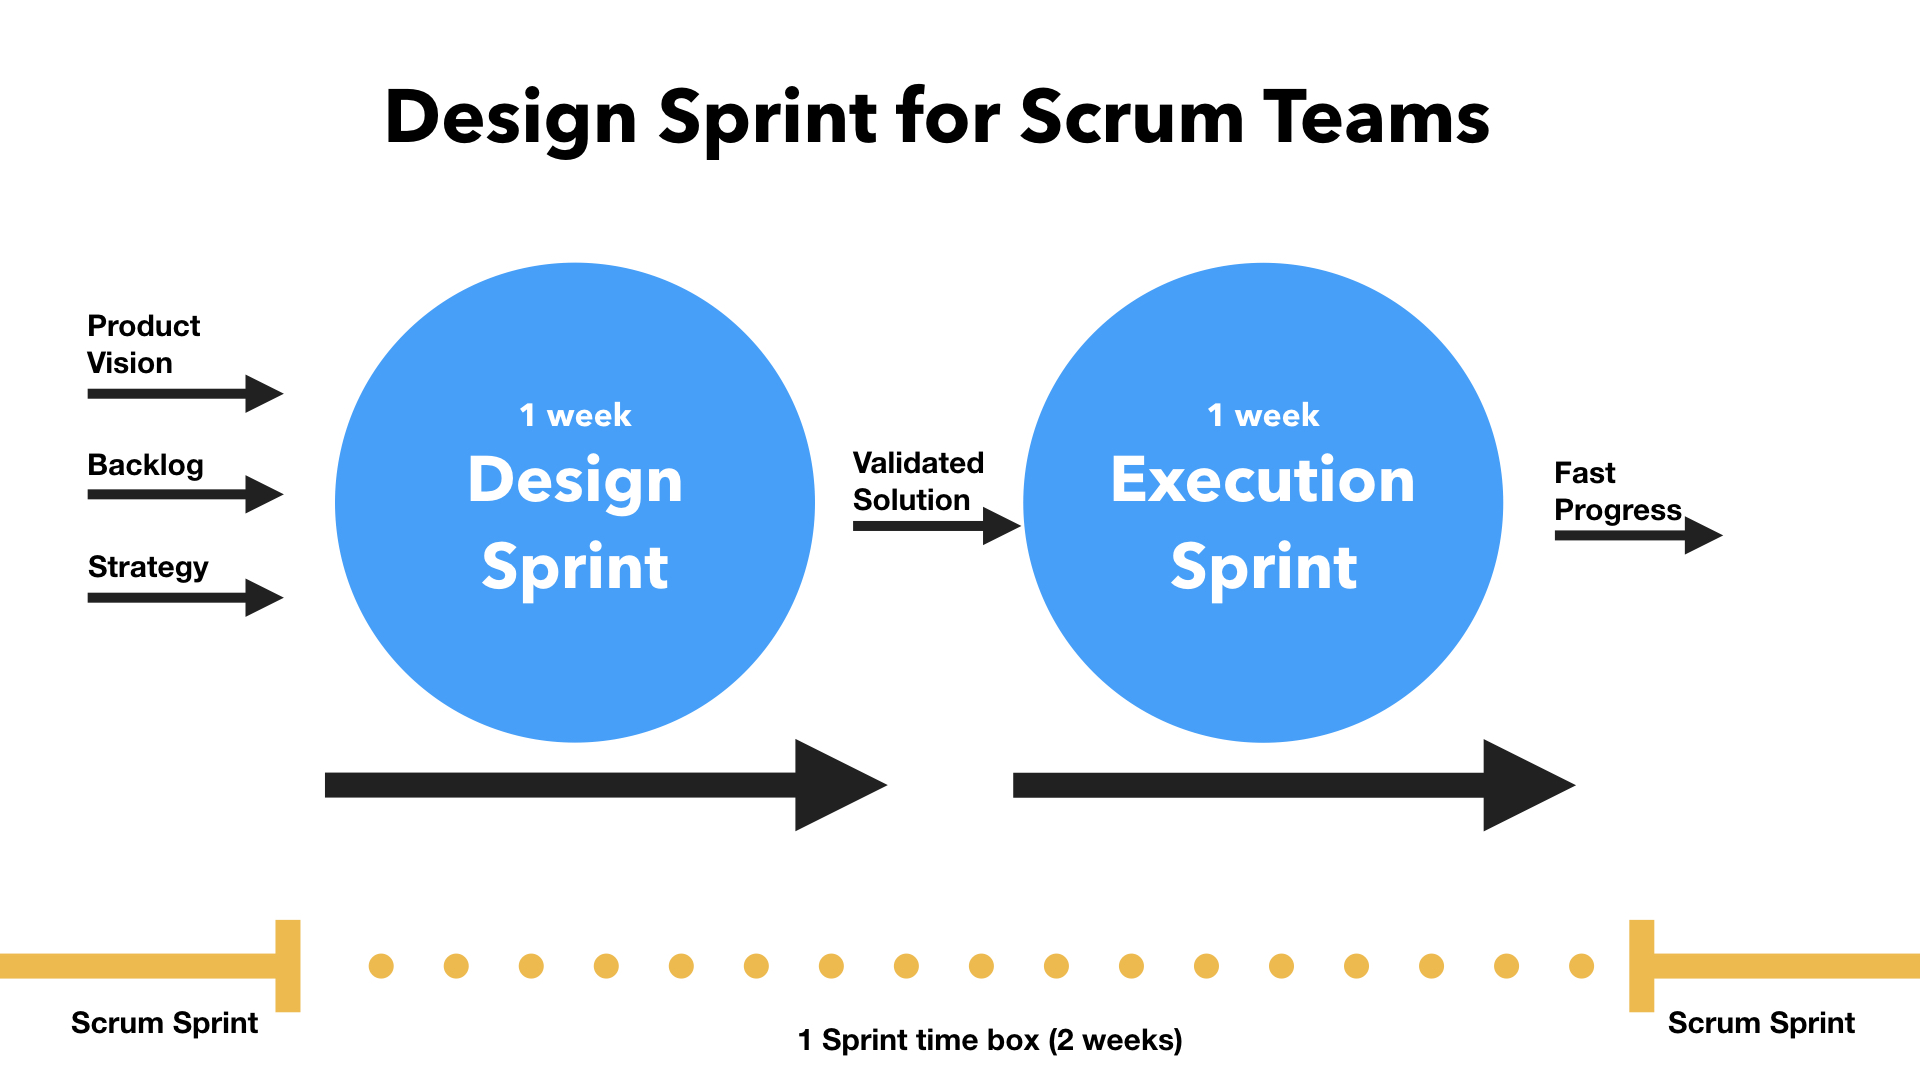 schedule design sprints for scrum teams